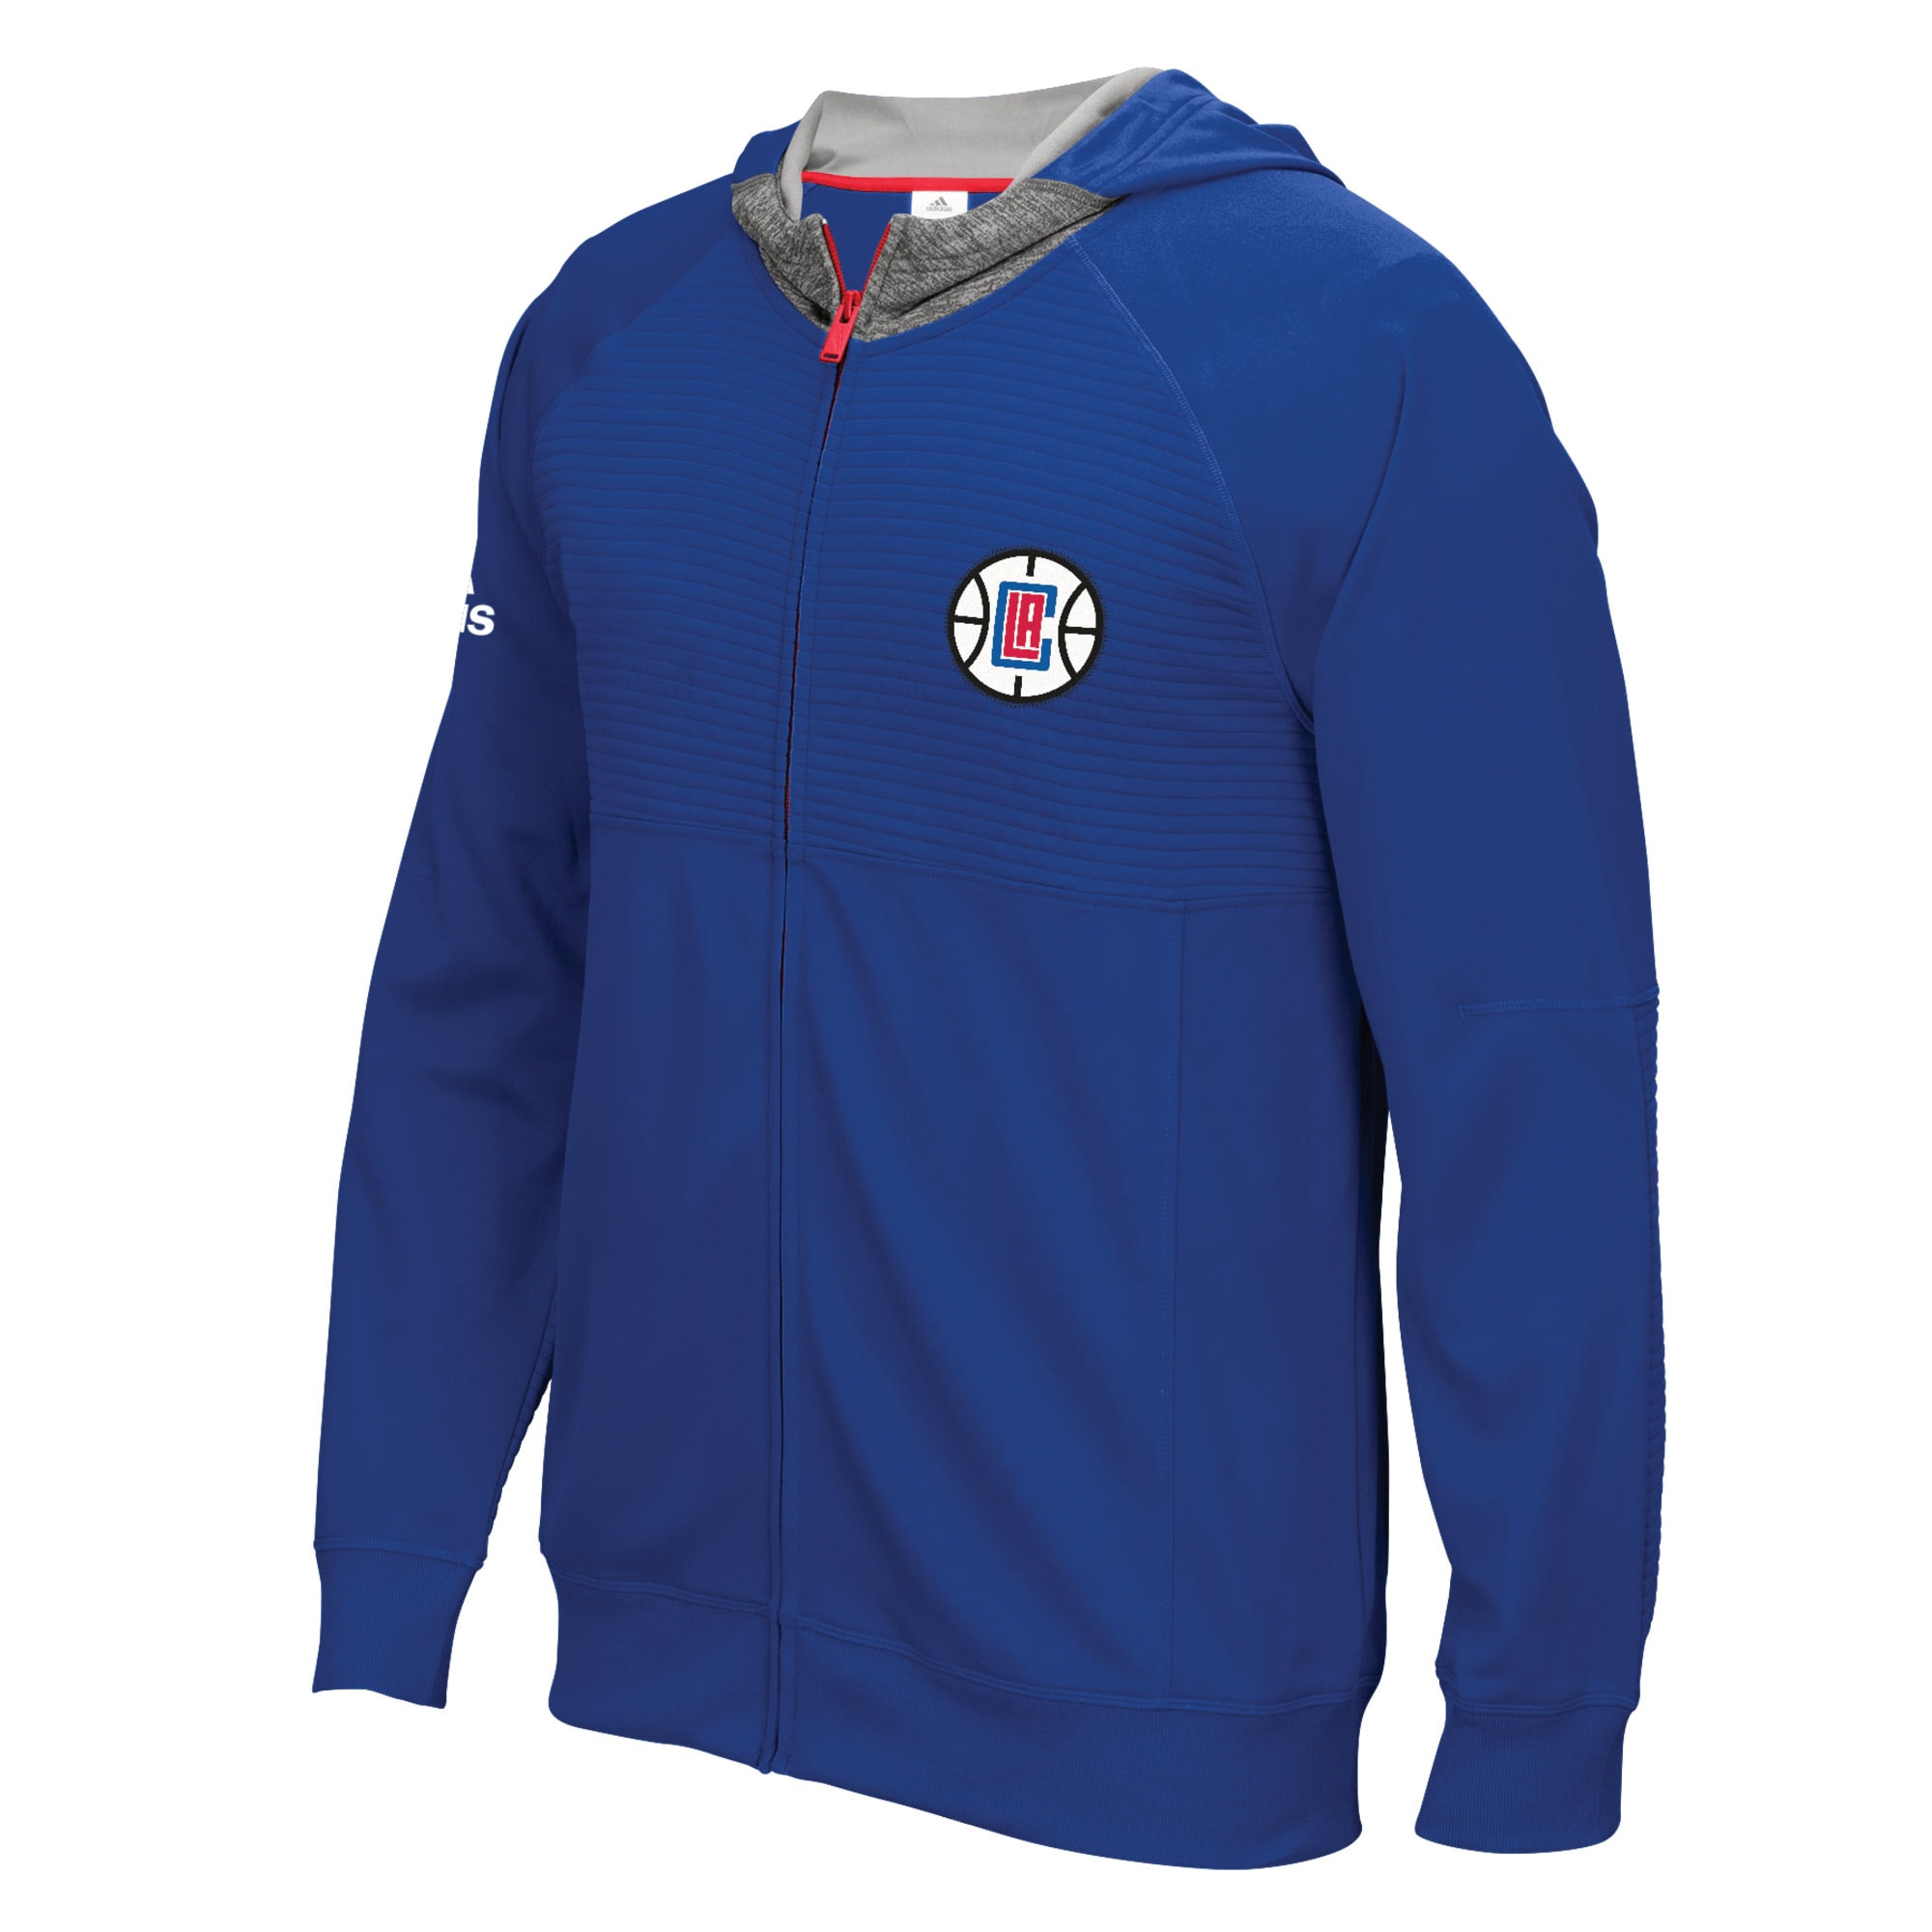 LA Clippers adidas 2016 Pre-Game Full-Zip Hooded Jacket - Royal